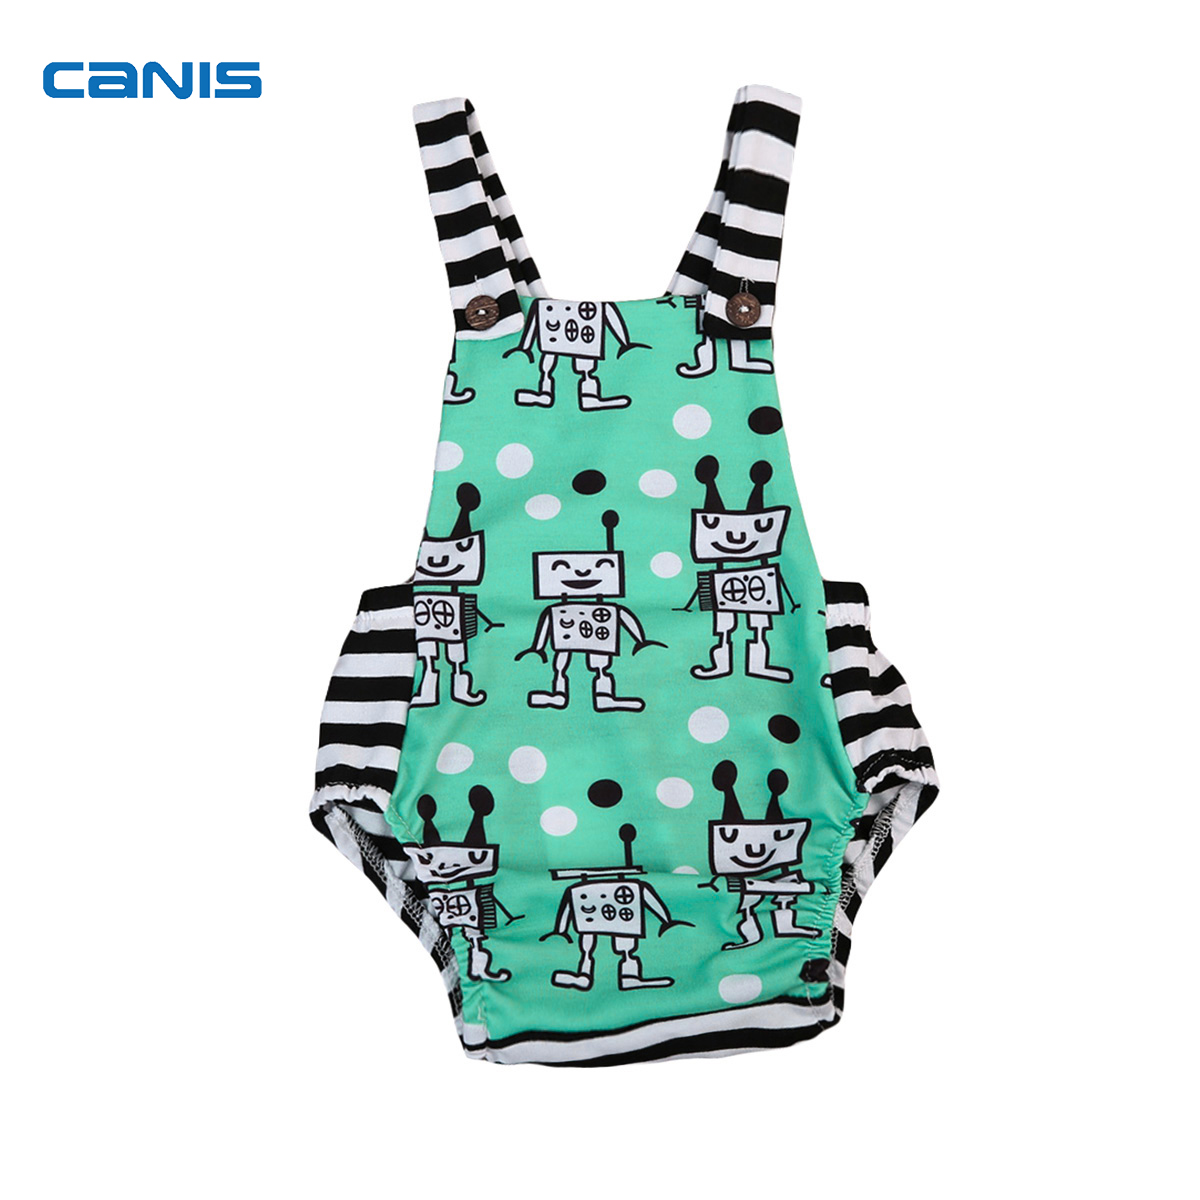 CANIS Baby Summer Clothing Newborn Toddler Baby Boy Girl Rompe Robot Striped Cartoons Romper Jumpsuit Playsuit Clothes Outfits